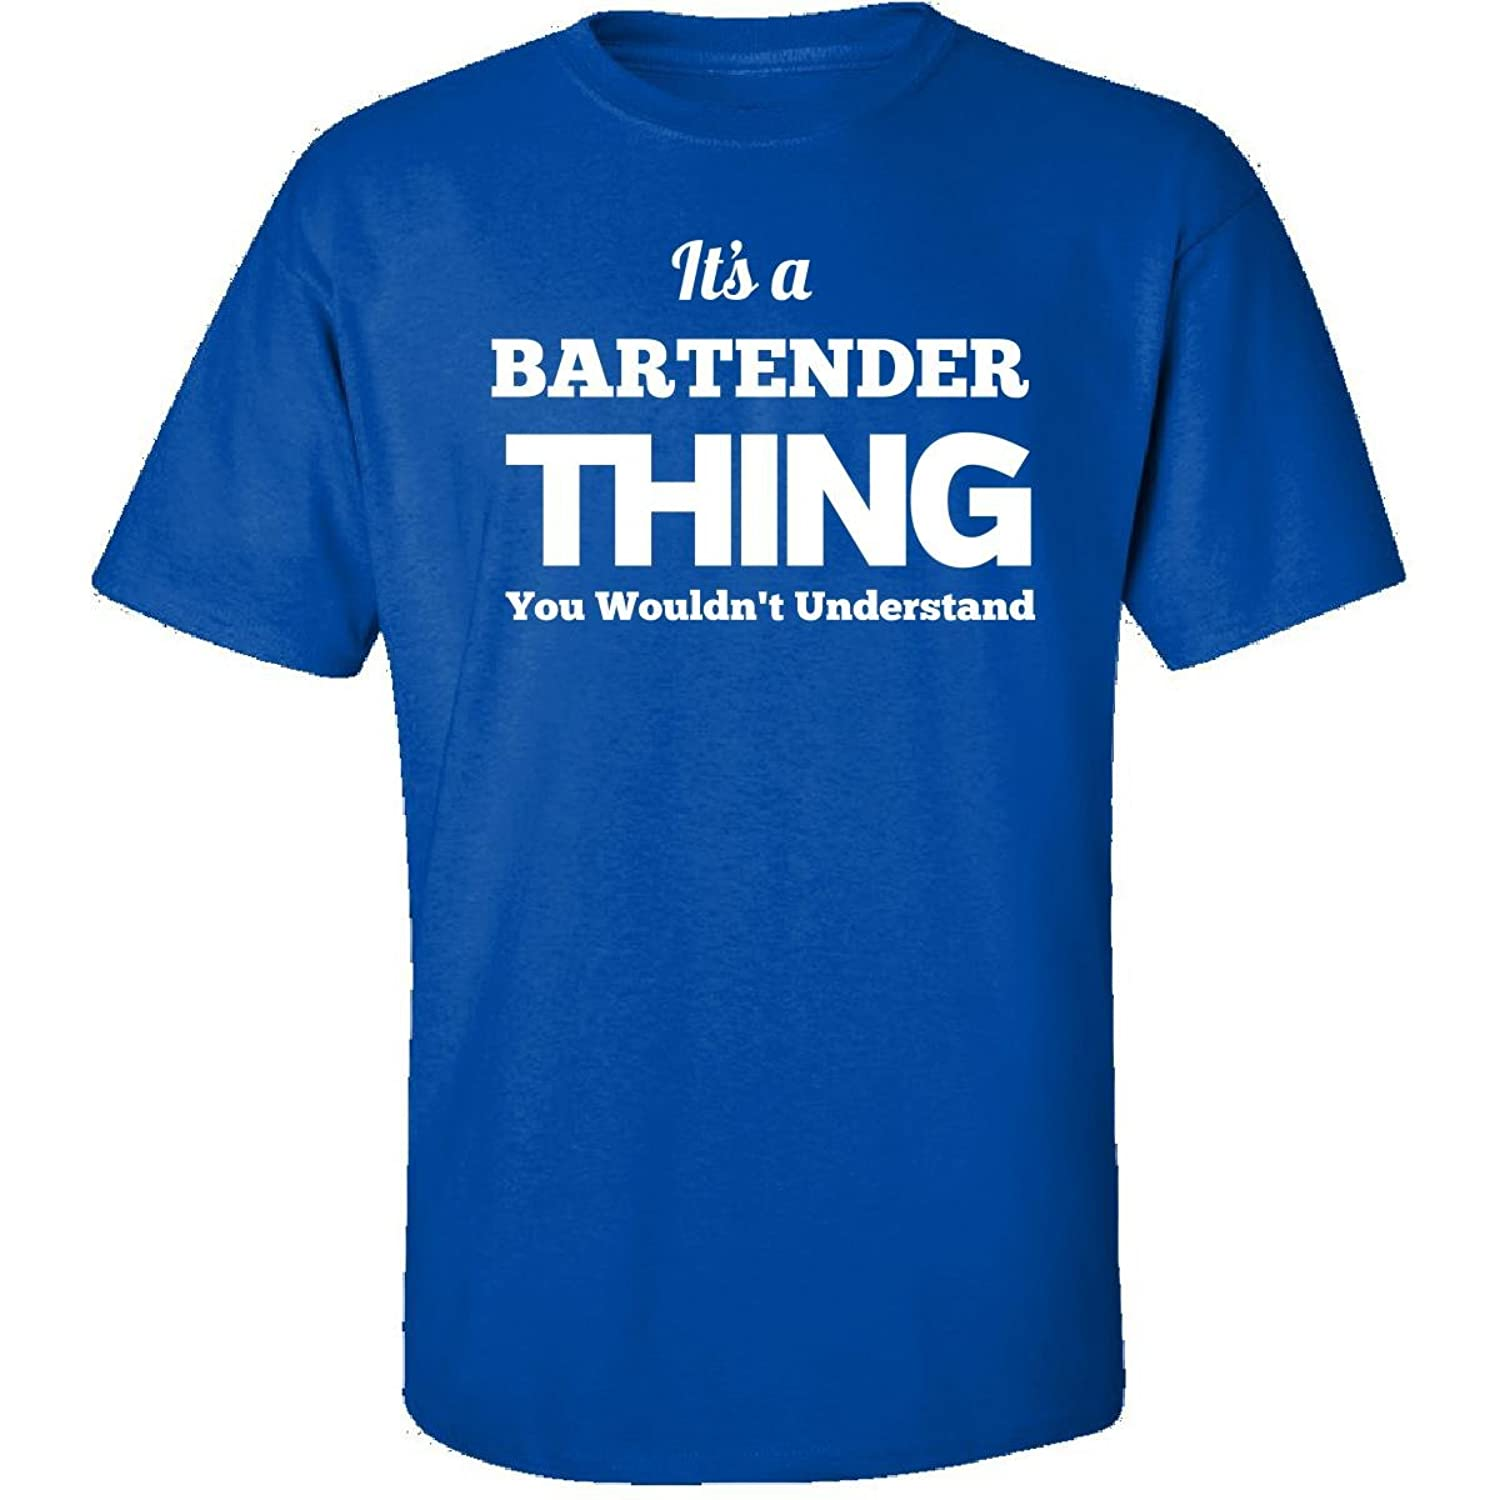 Its A Bartender Thing You Wouldnt Understand - Adult Shirt